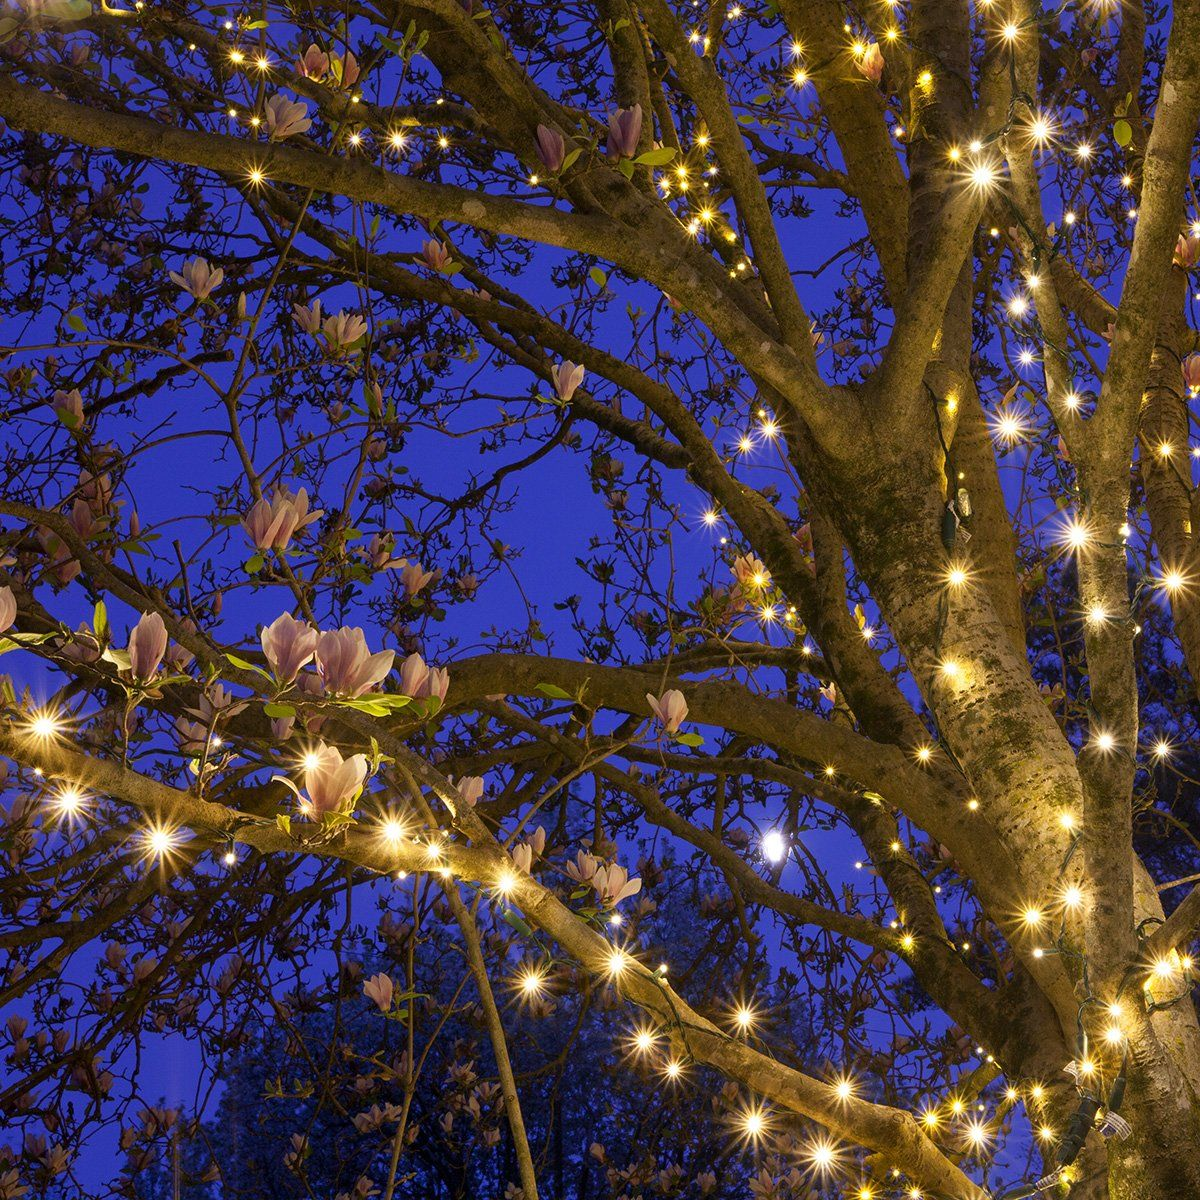 50 Lights 4 Spacing 17 ft Indoor//Outdoor LED White Christmas Lights Outdoor Tree Lights Christmas String Lights Wedding Party Decorations Cool White LED Christmas Mini String Light Set